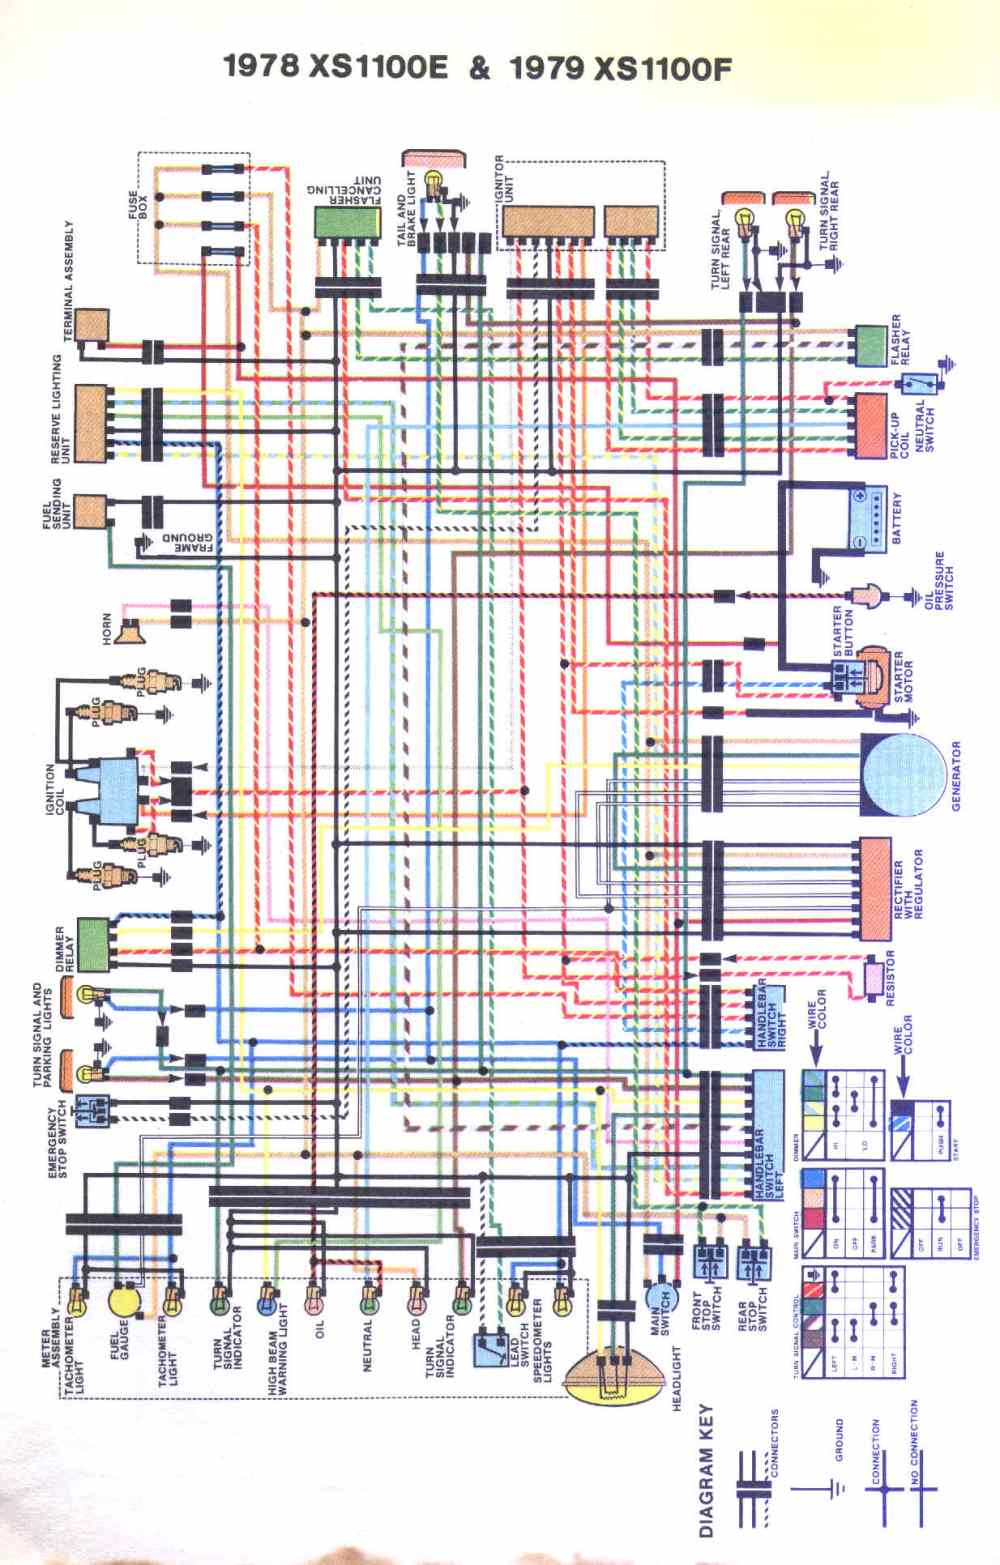 medium resolution of 1979 trans am headlight wiring diagram captain source of wiring rh rosepettal com 1977 trans am 1981 pontiac trans am fuse box diagram